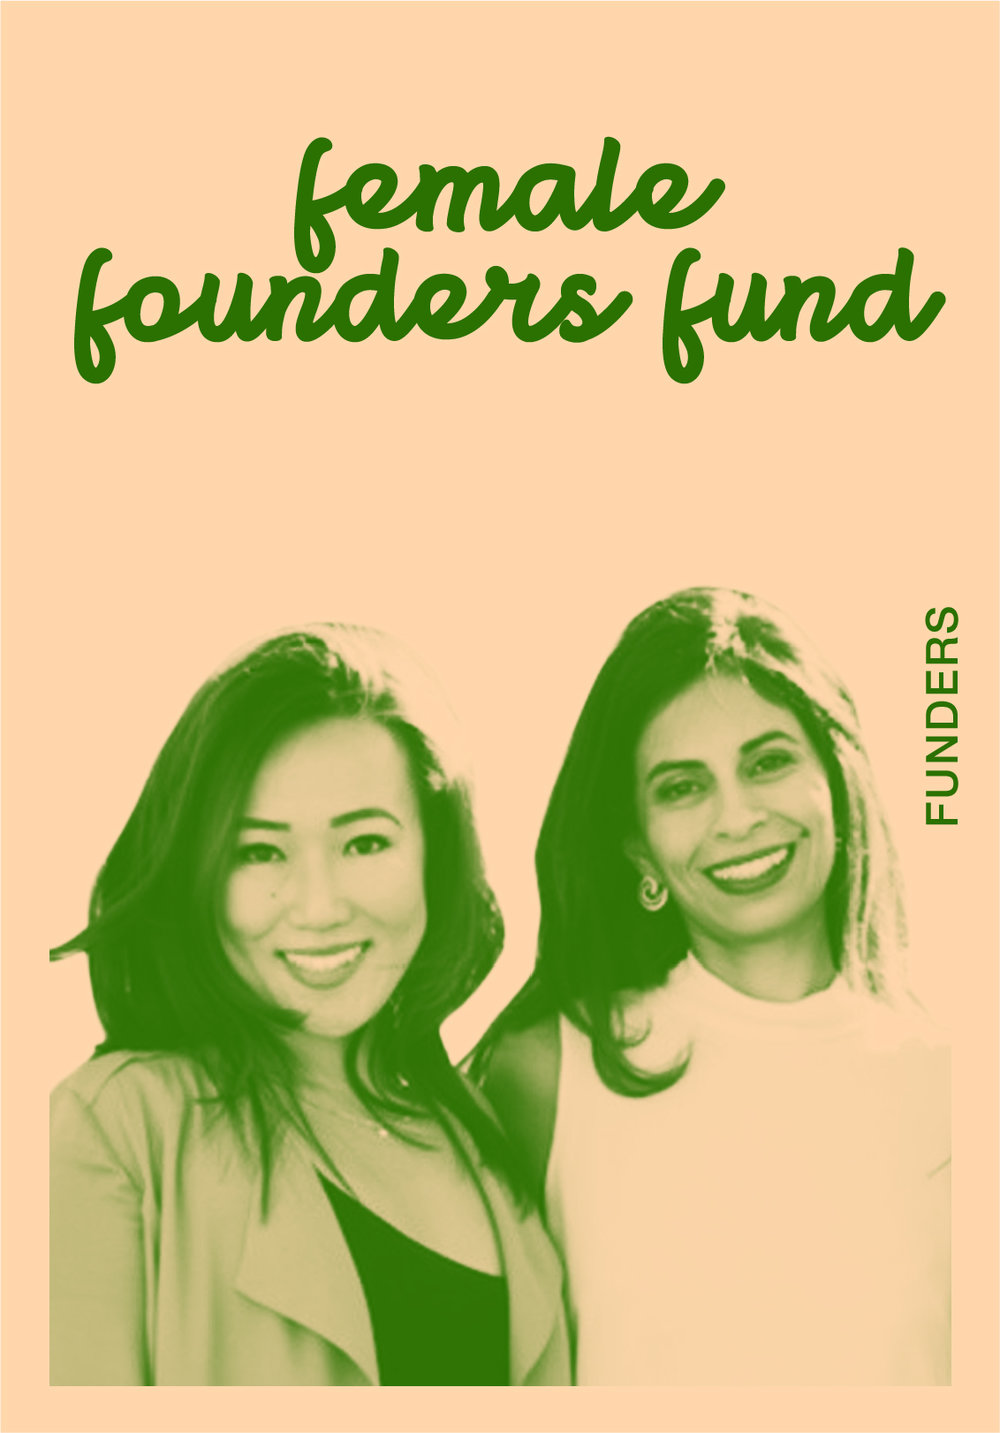 Female Founders Fund   WEBSITE   @FCUBEDVC   IG: FCUBEDVC